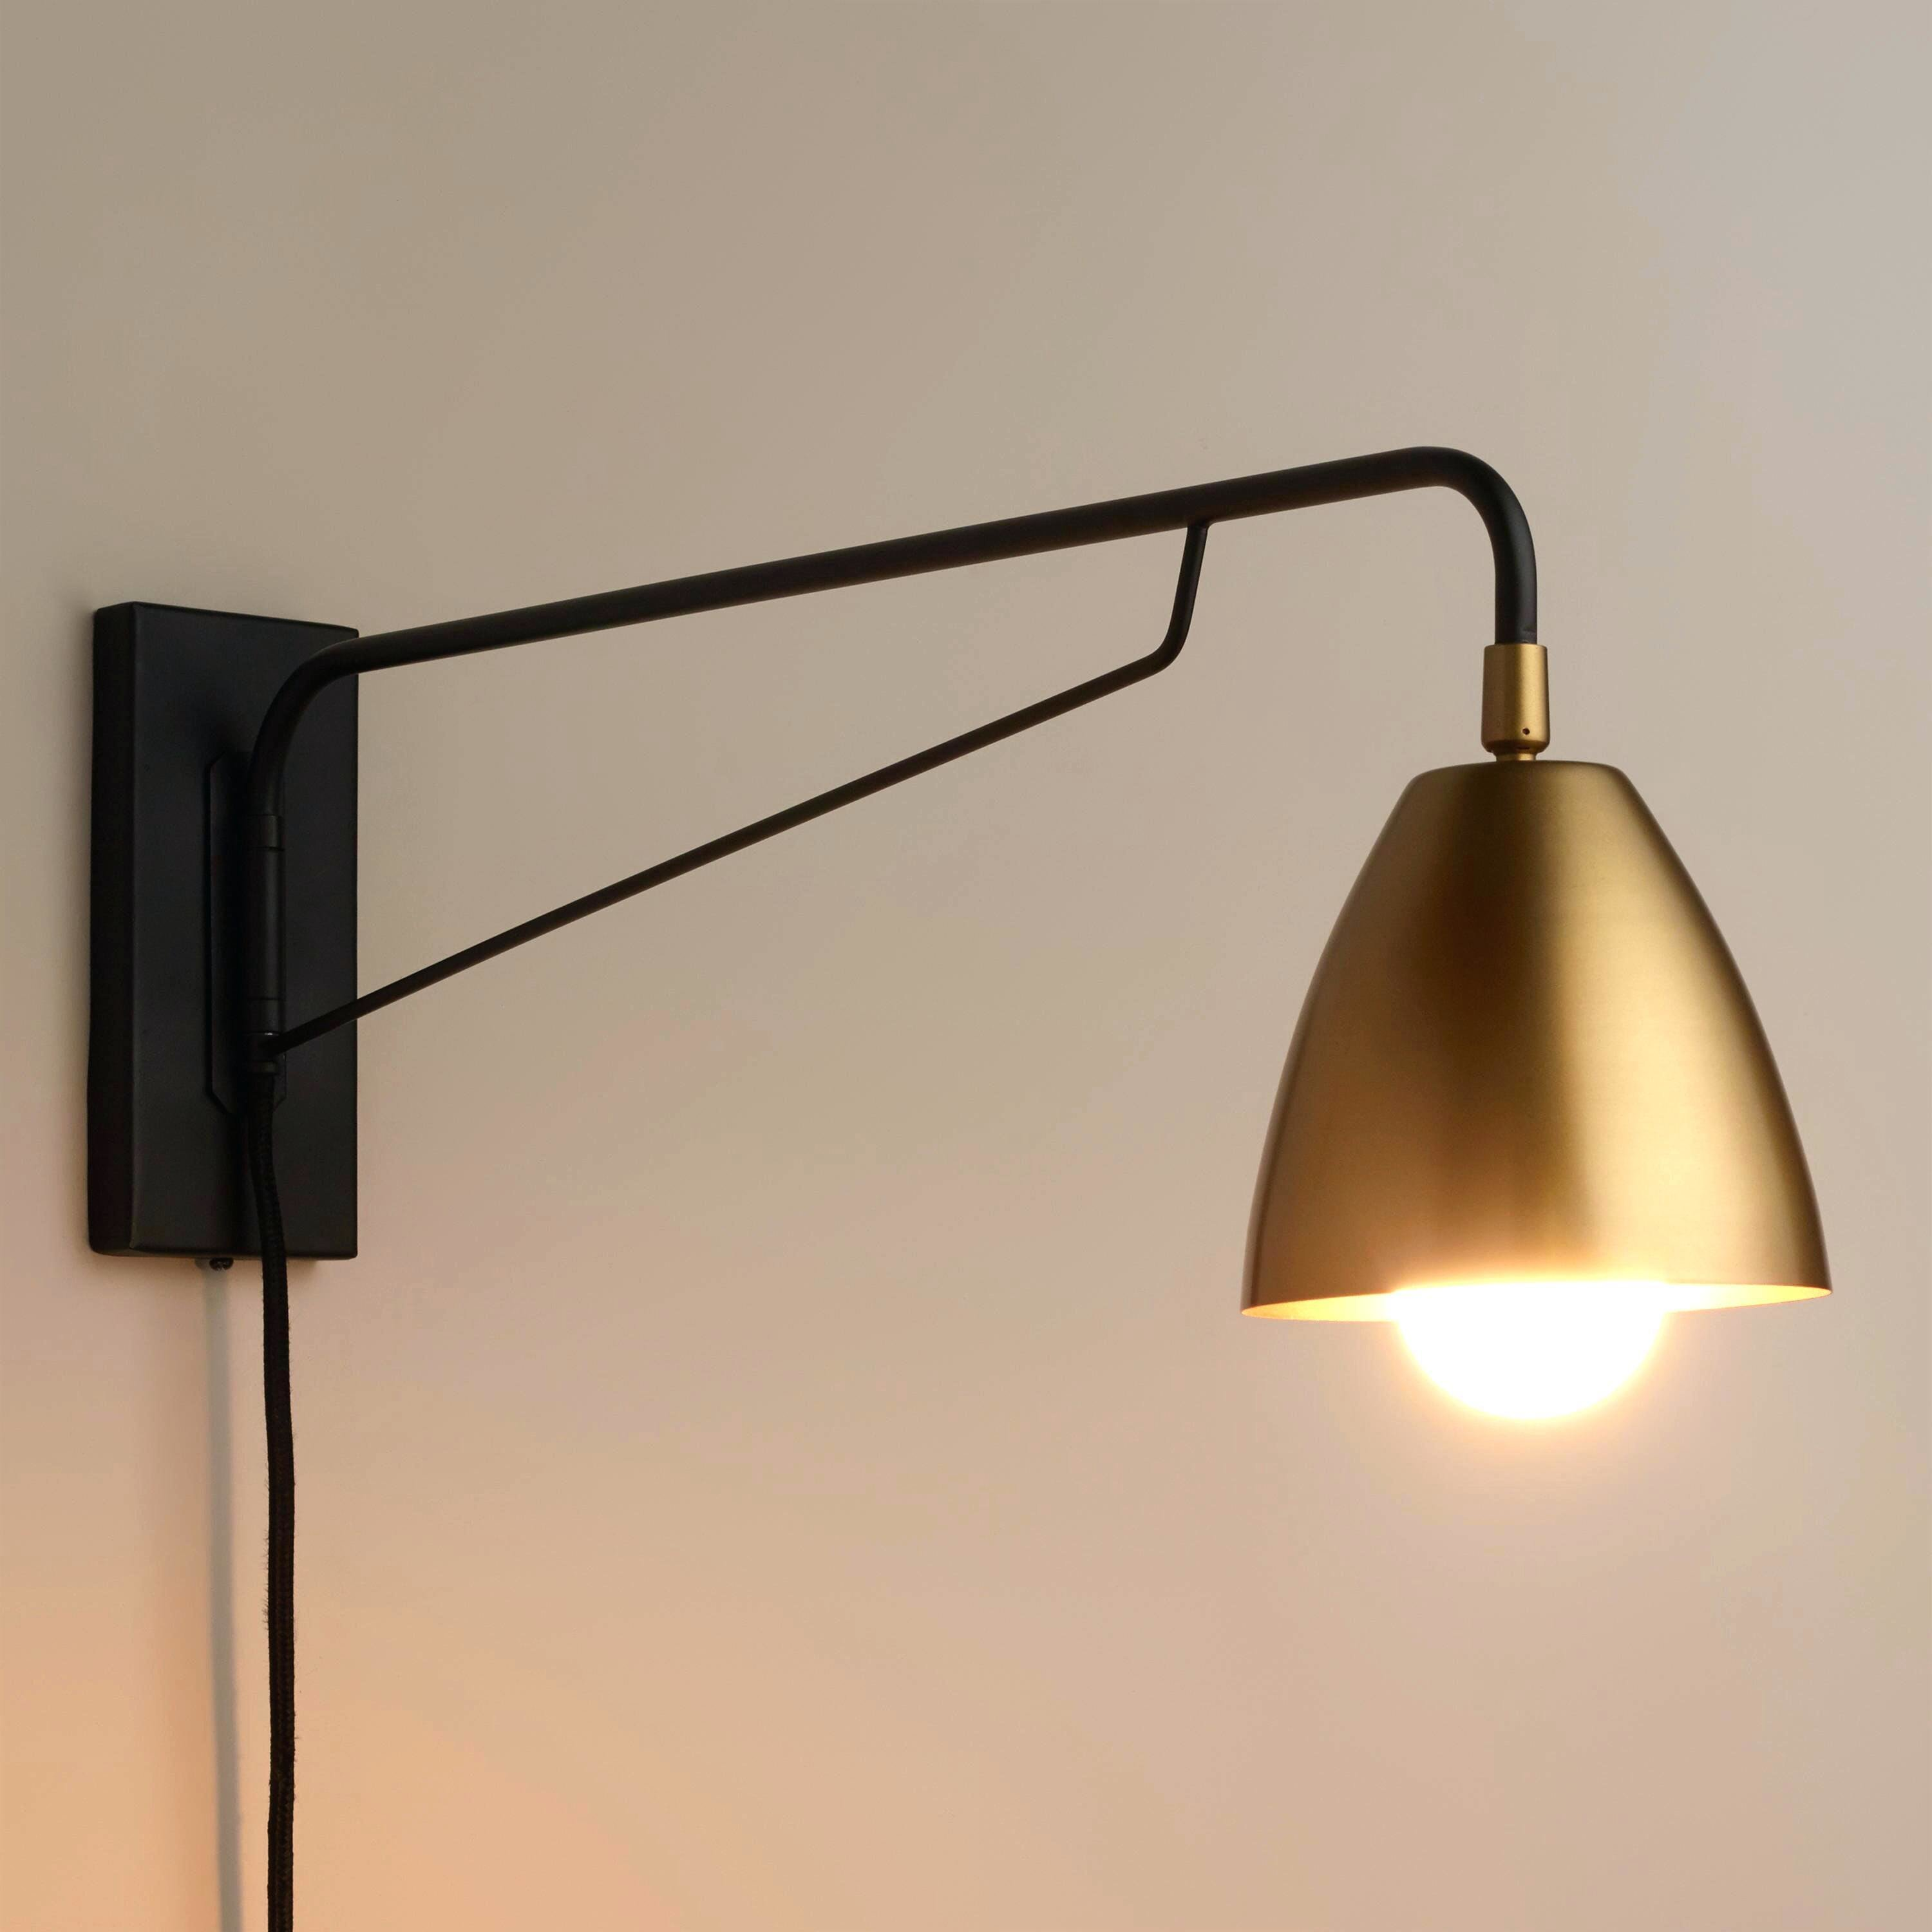 Best Plug In Wall Lights For Bedroom Bedrooms Lamps Led With With Pictures